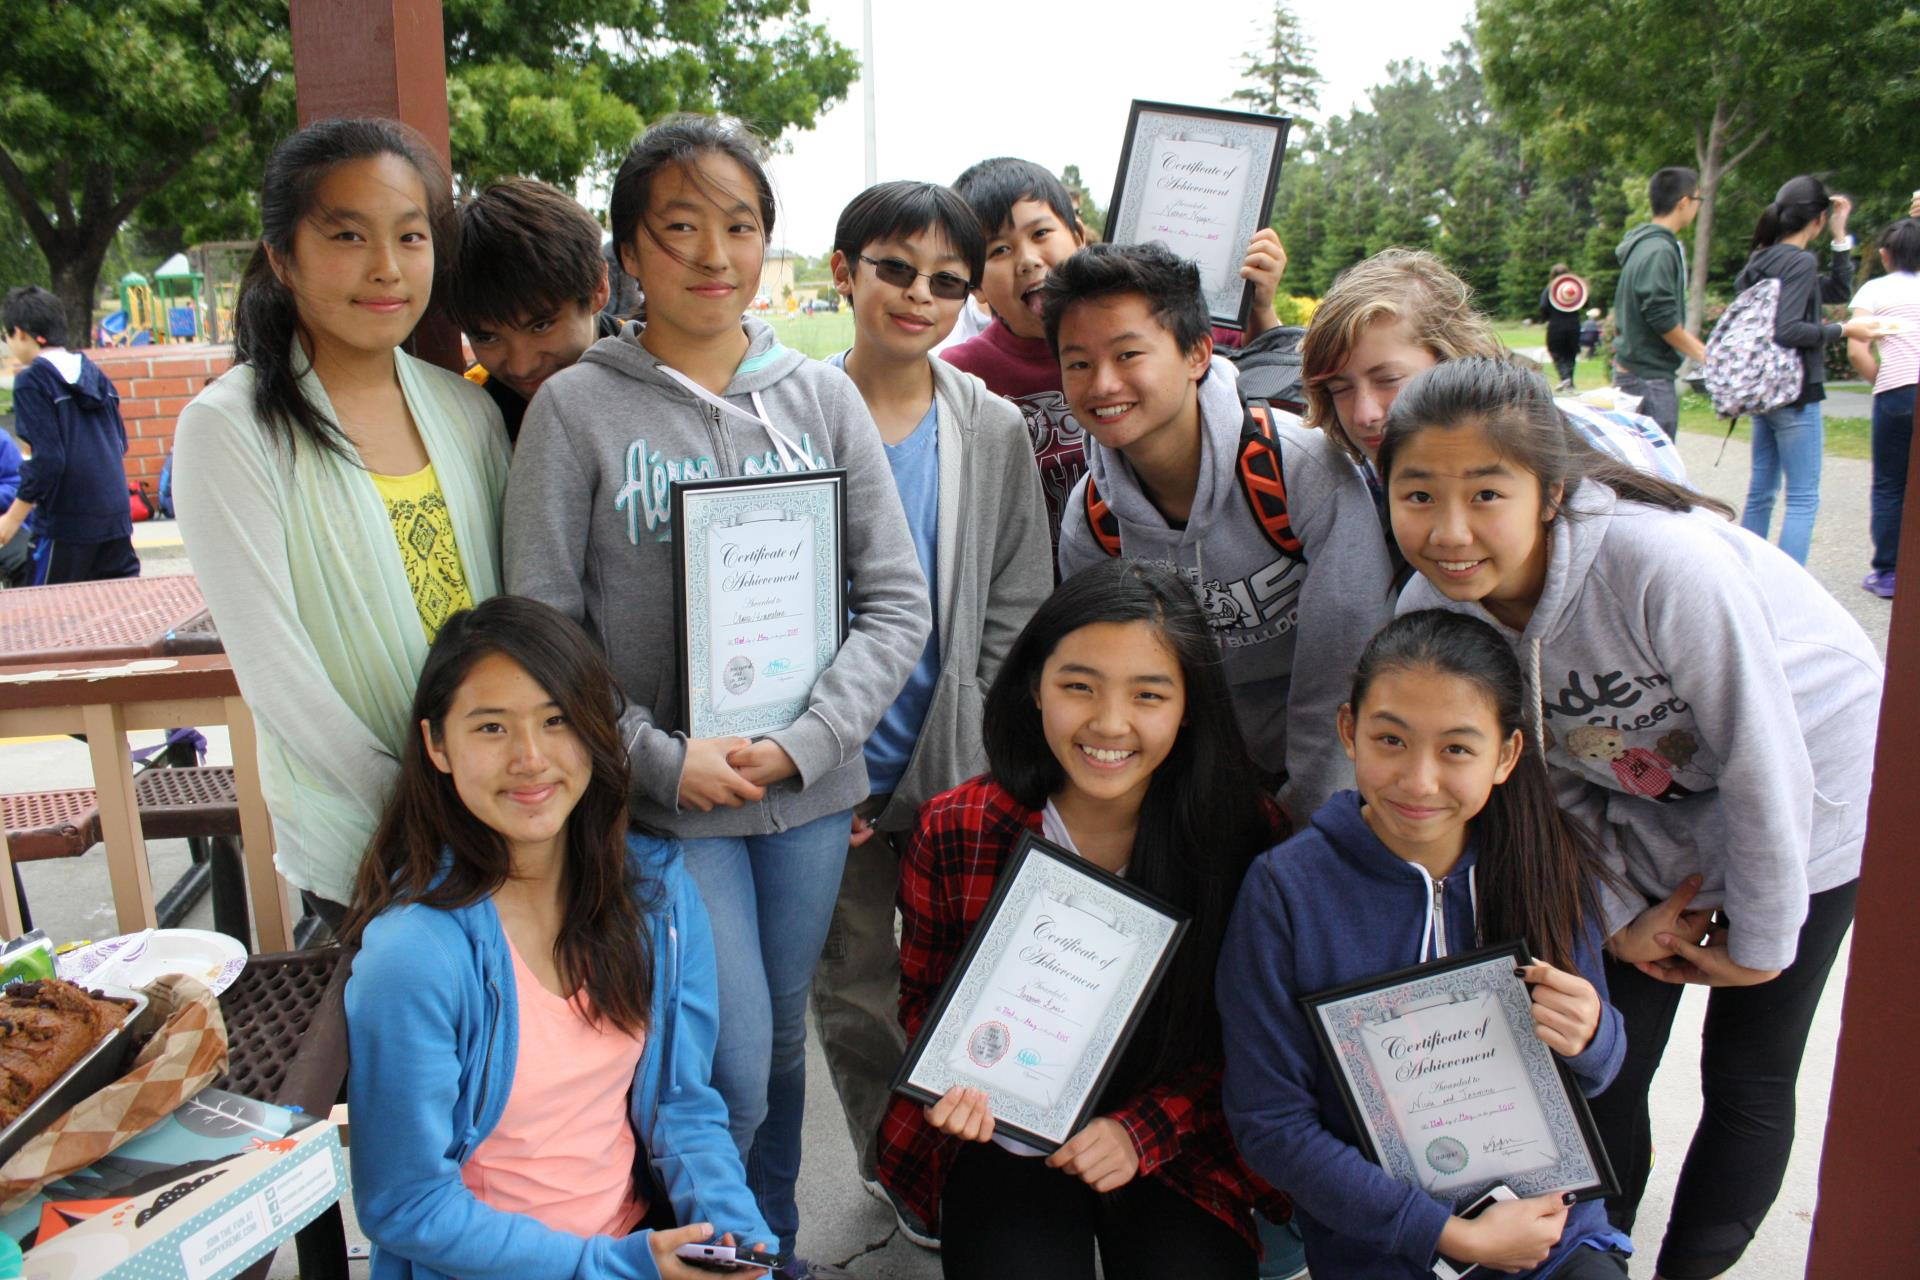 Youth Sports badminton present certificates.